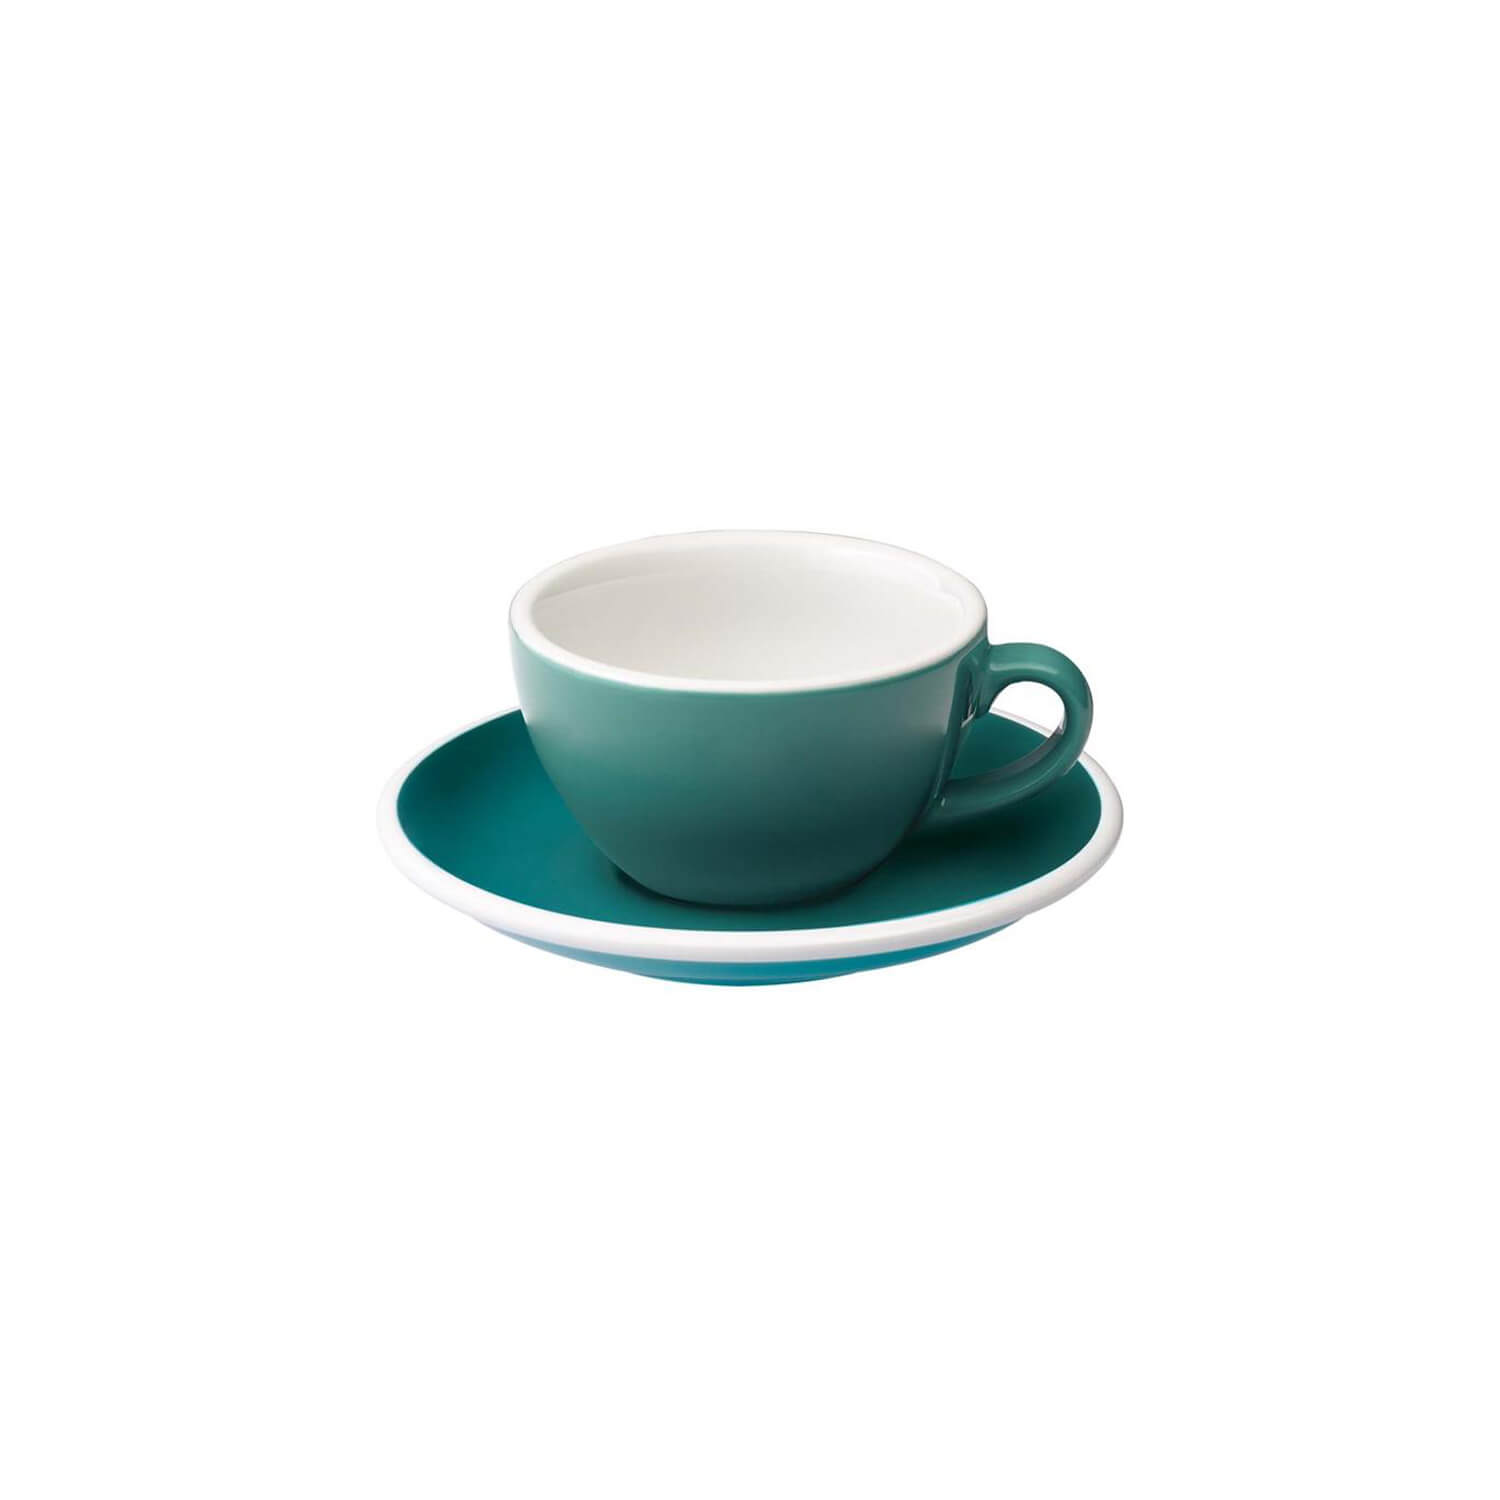 Loveramics - Egg - Flat White Cup - Teal